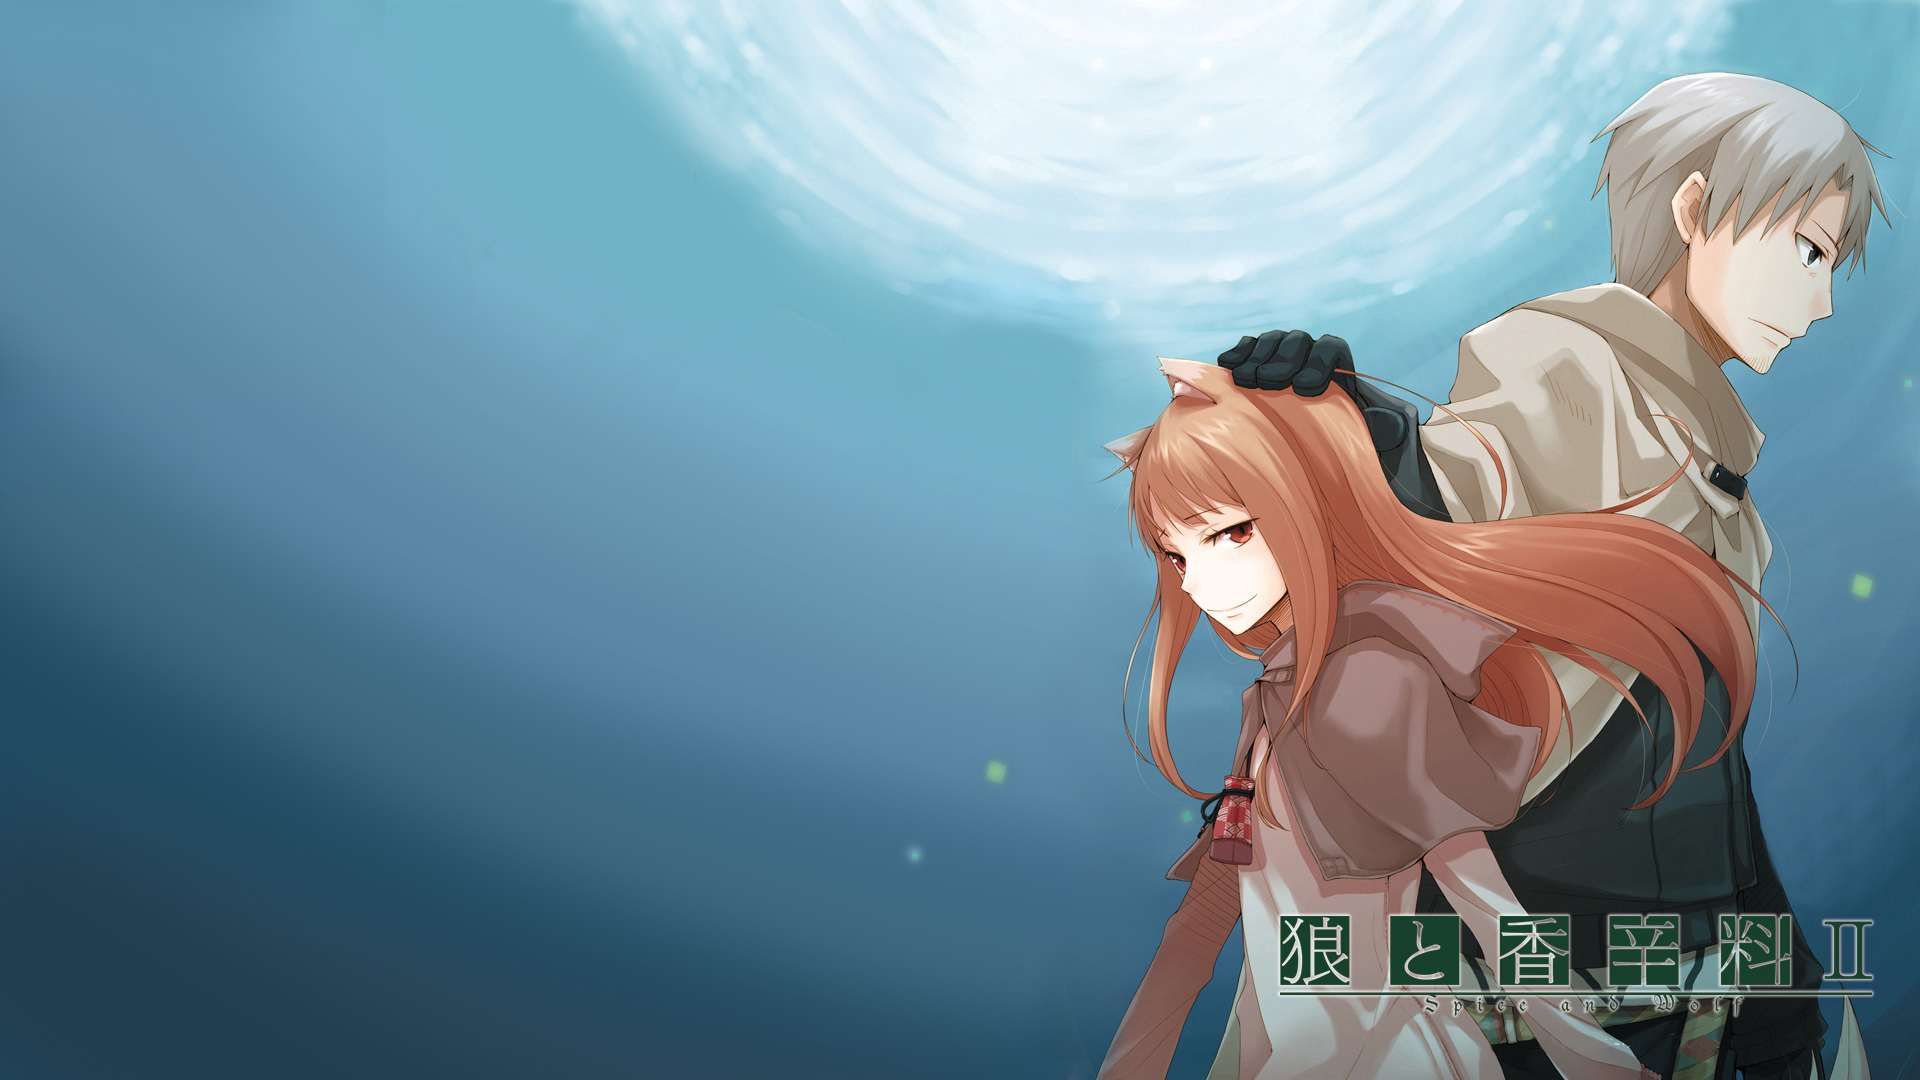 Spice And Wolf Hd Wallpaper Background Image 1920x1080